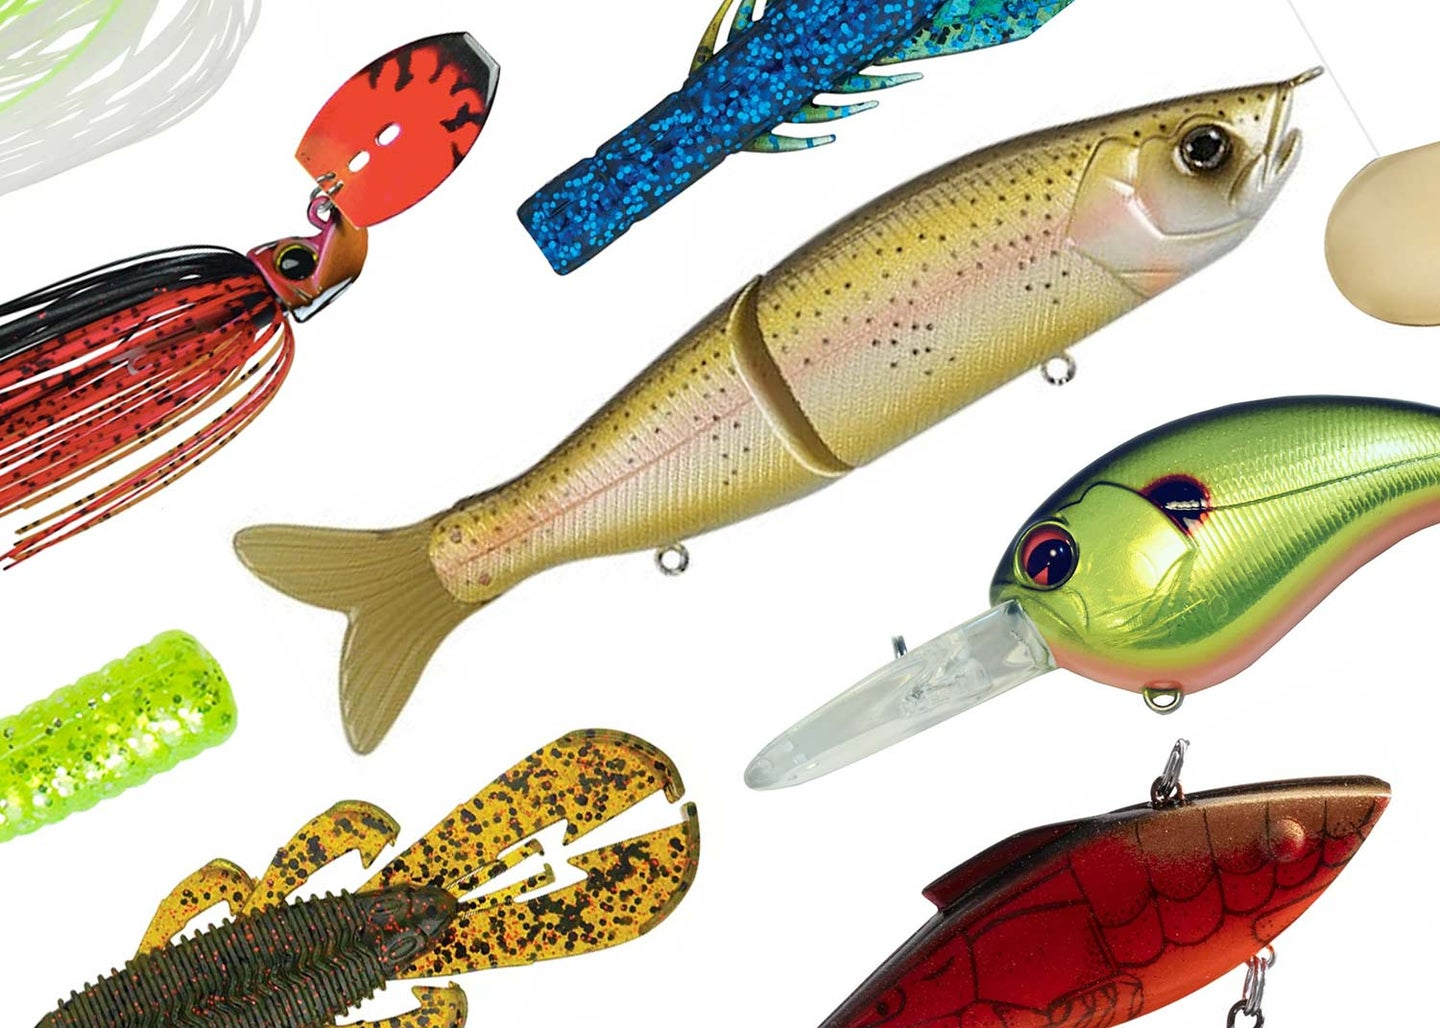 A collage of bass fishing lures on a white background.